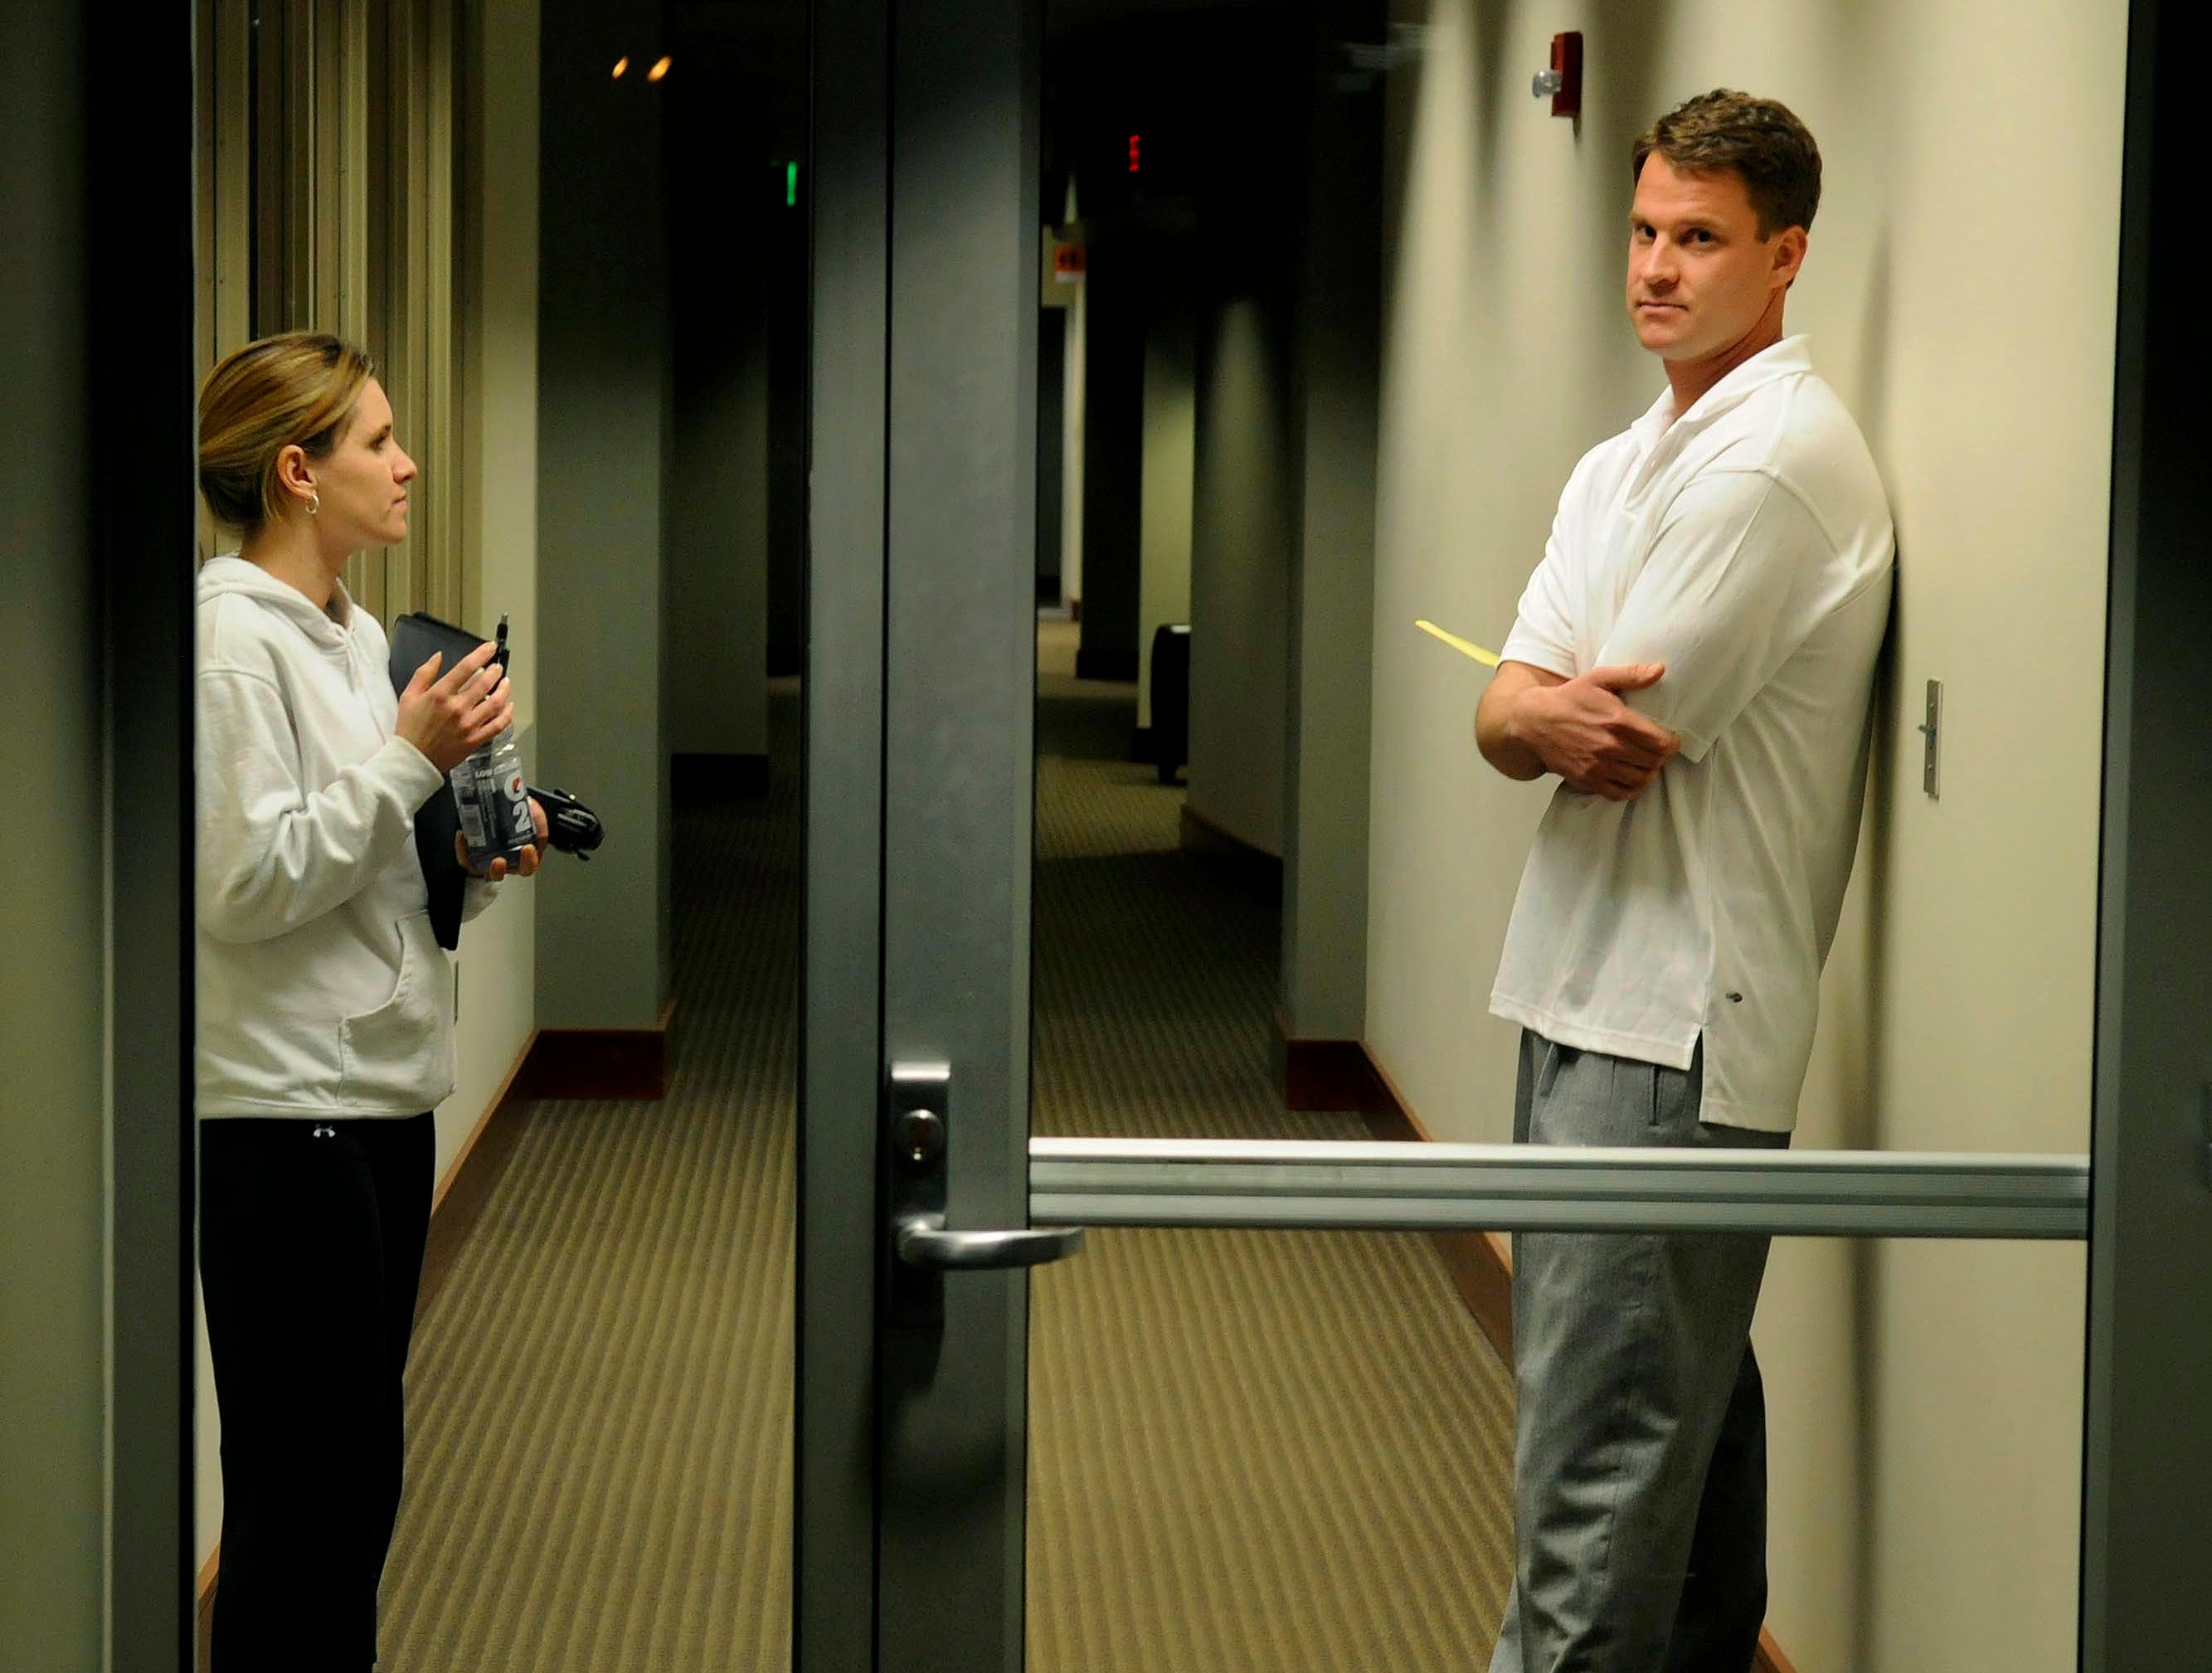 Lane Kiffin in the hallway Tuesday, Jan 12, 2010 waiting for television stations to kill their live feed before he would start  his press conference about leaving Tennessee.